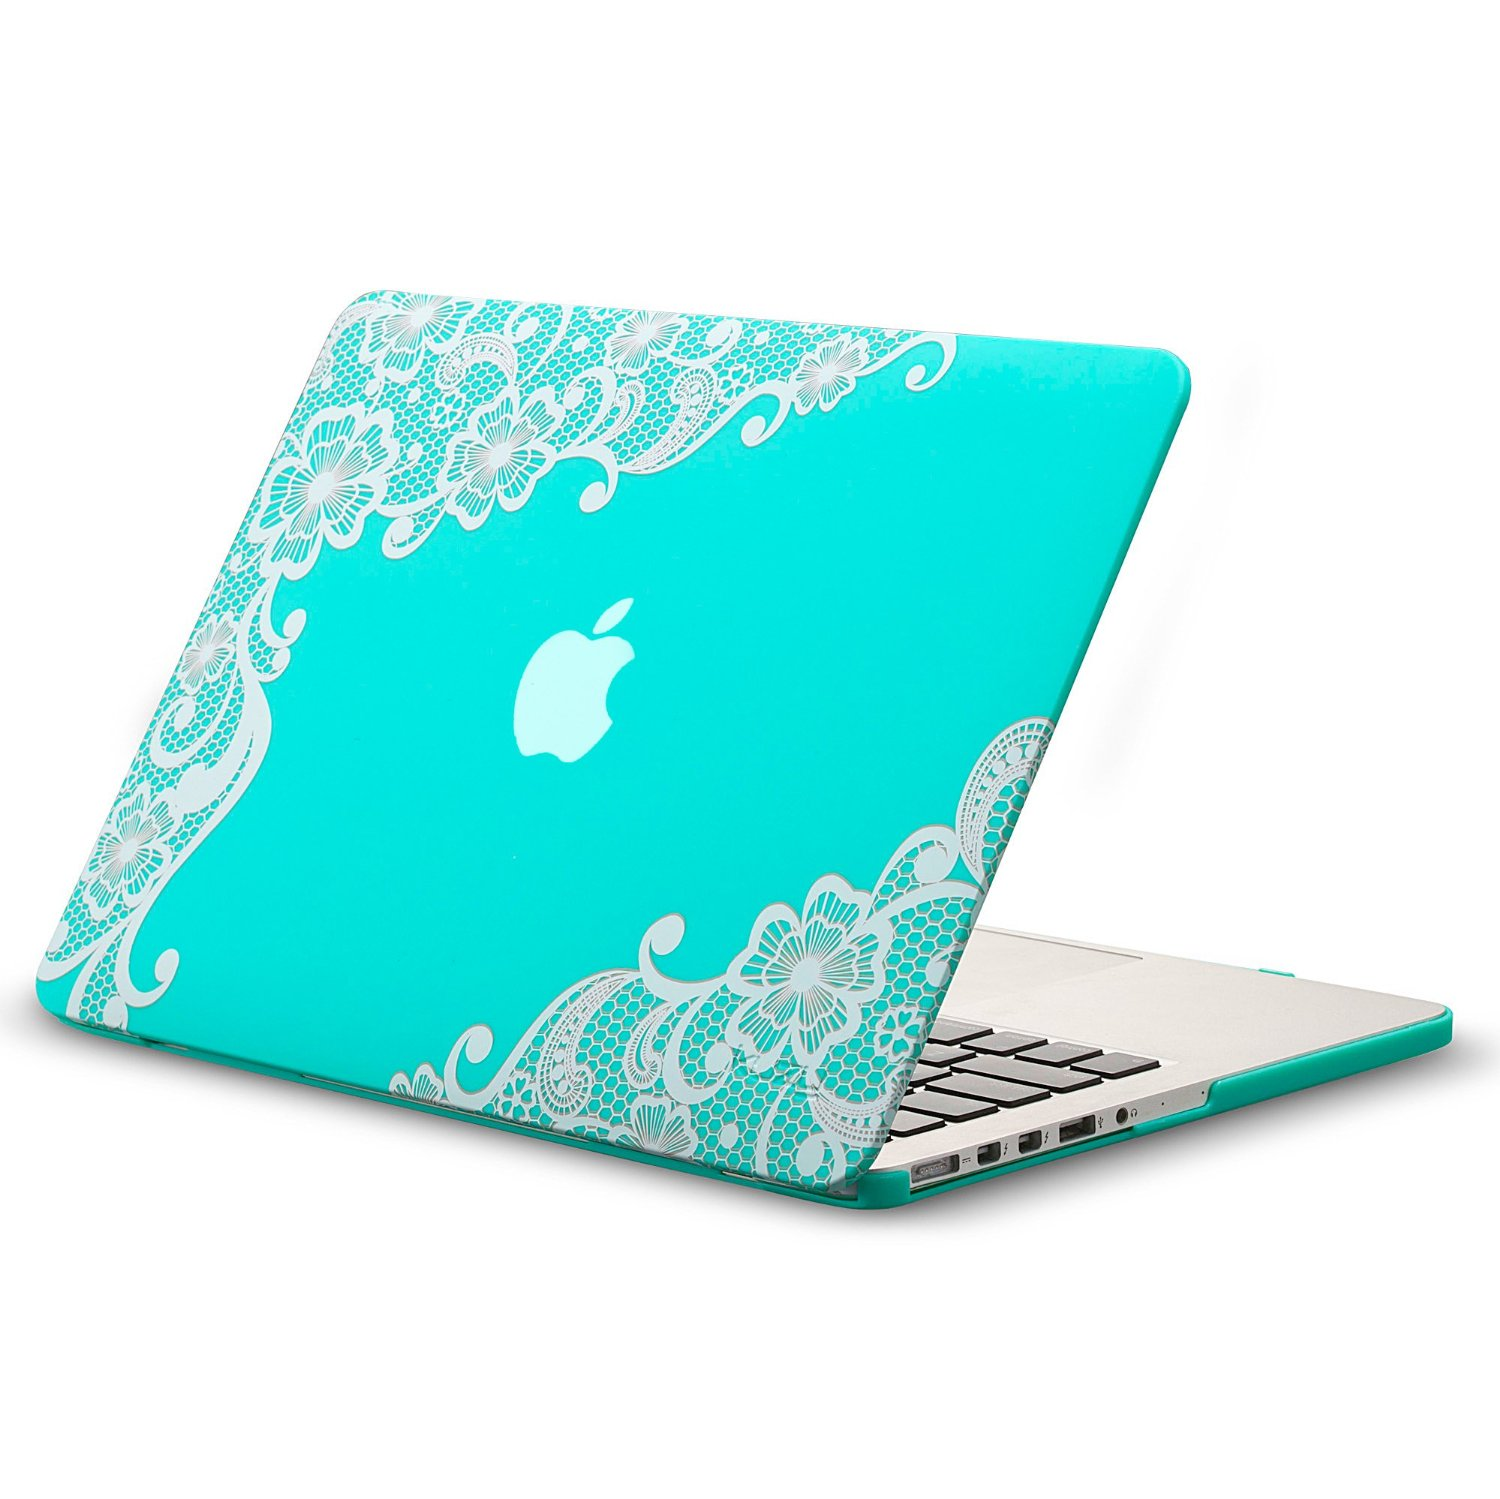 reputable site 94b43 0805c Buy Kuzy - Lace Rubberized Hard Case for Older MacBook Pro 15.4 ...